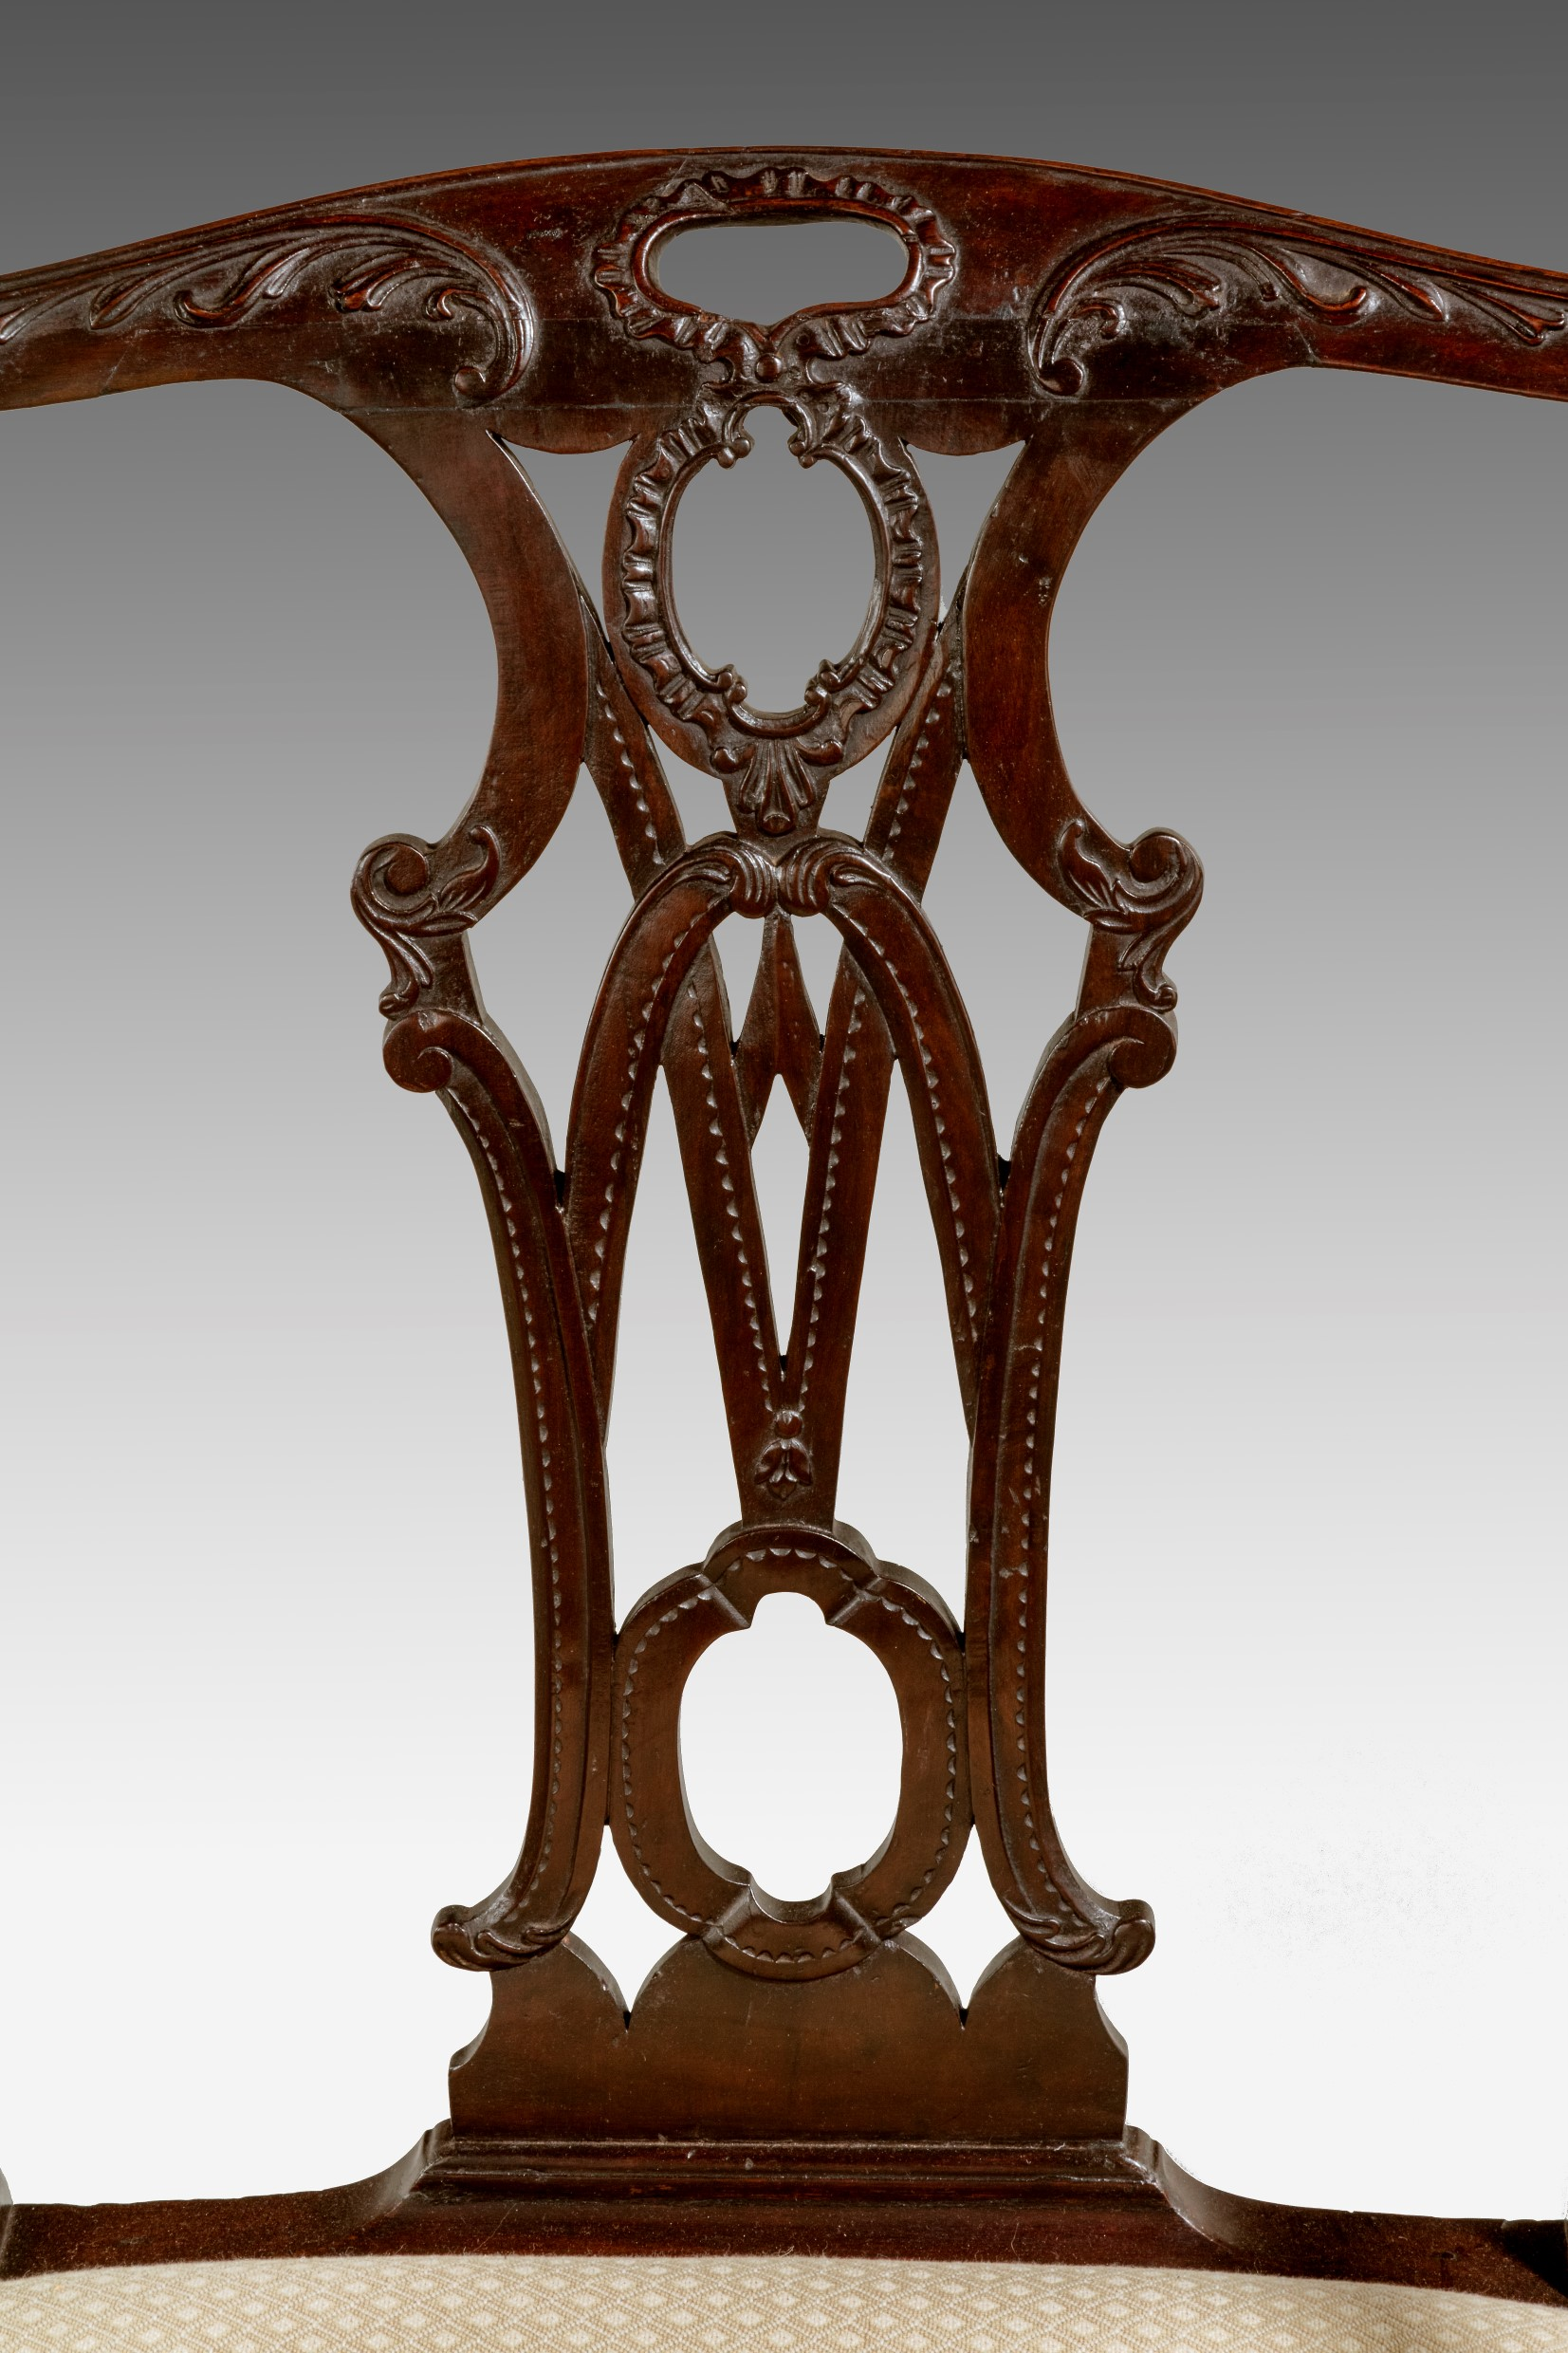 ... Antique George III Chippendale Armchair Image 2